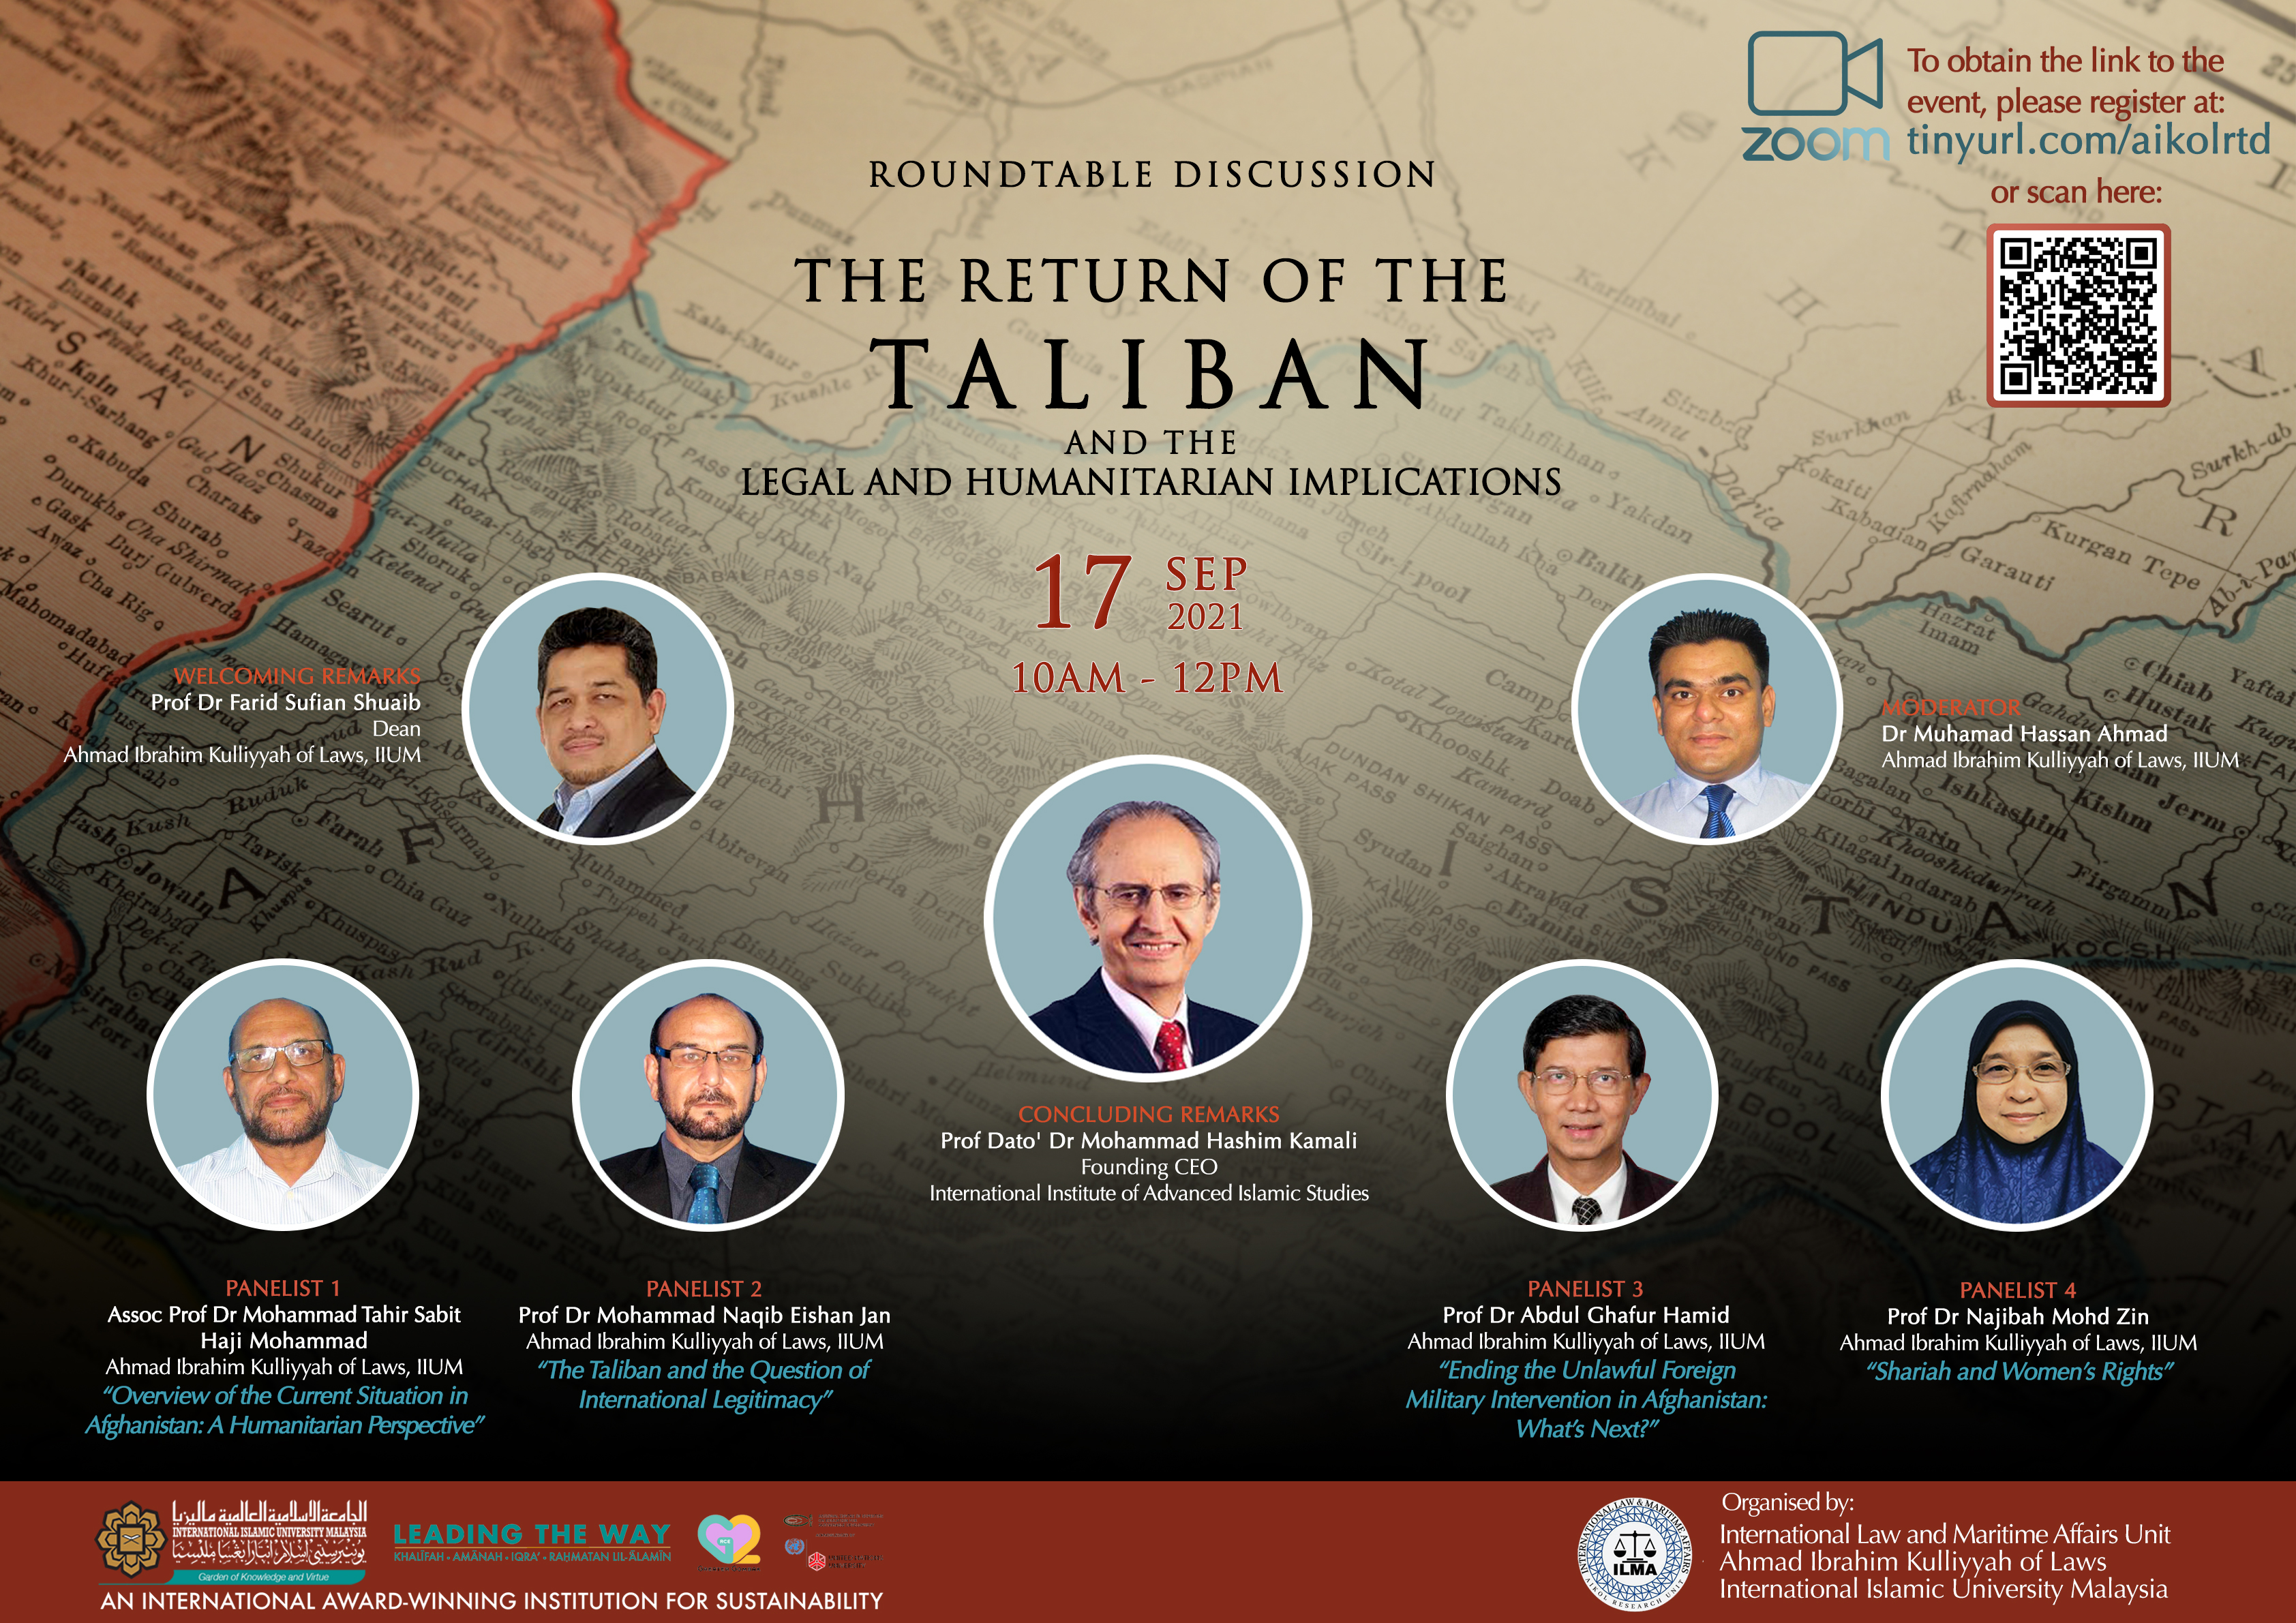 ROUNDTABLE DISCUSSION ON THE RETURN OF THE TALIBAN AND THE LEGAL AND HUMANITARIAN IMPLICATIONS